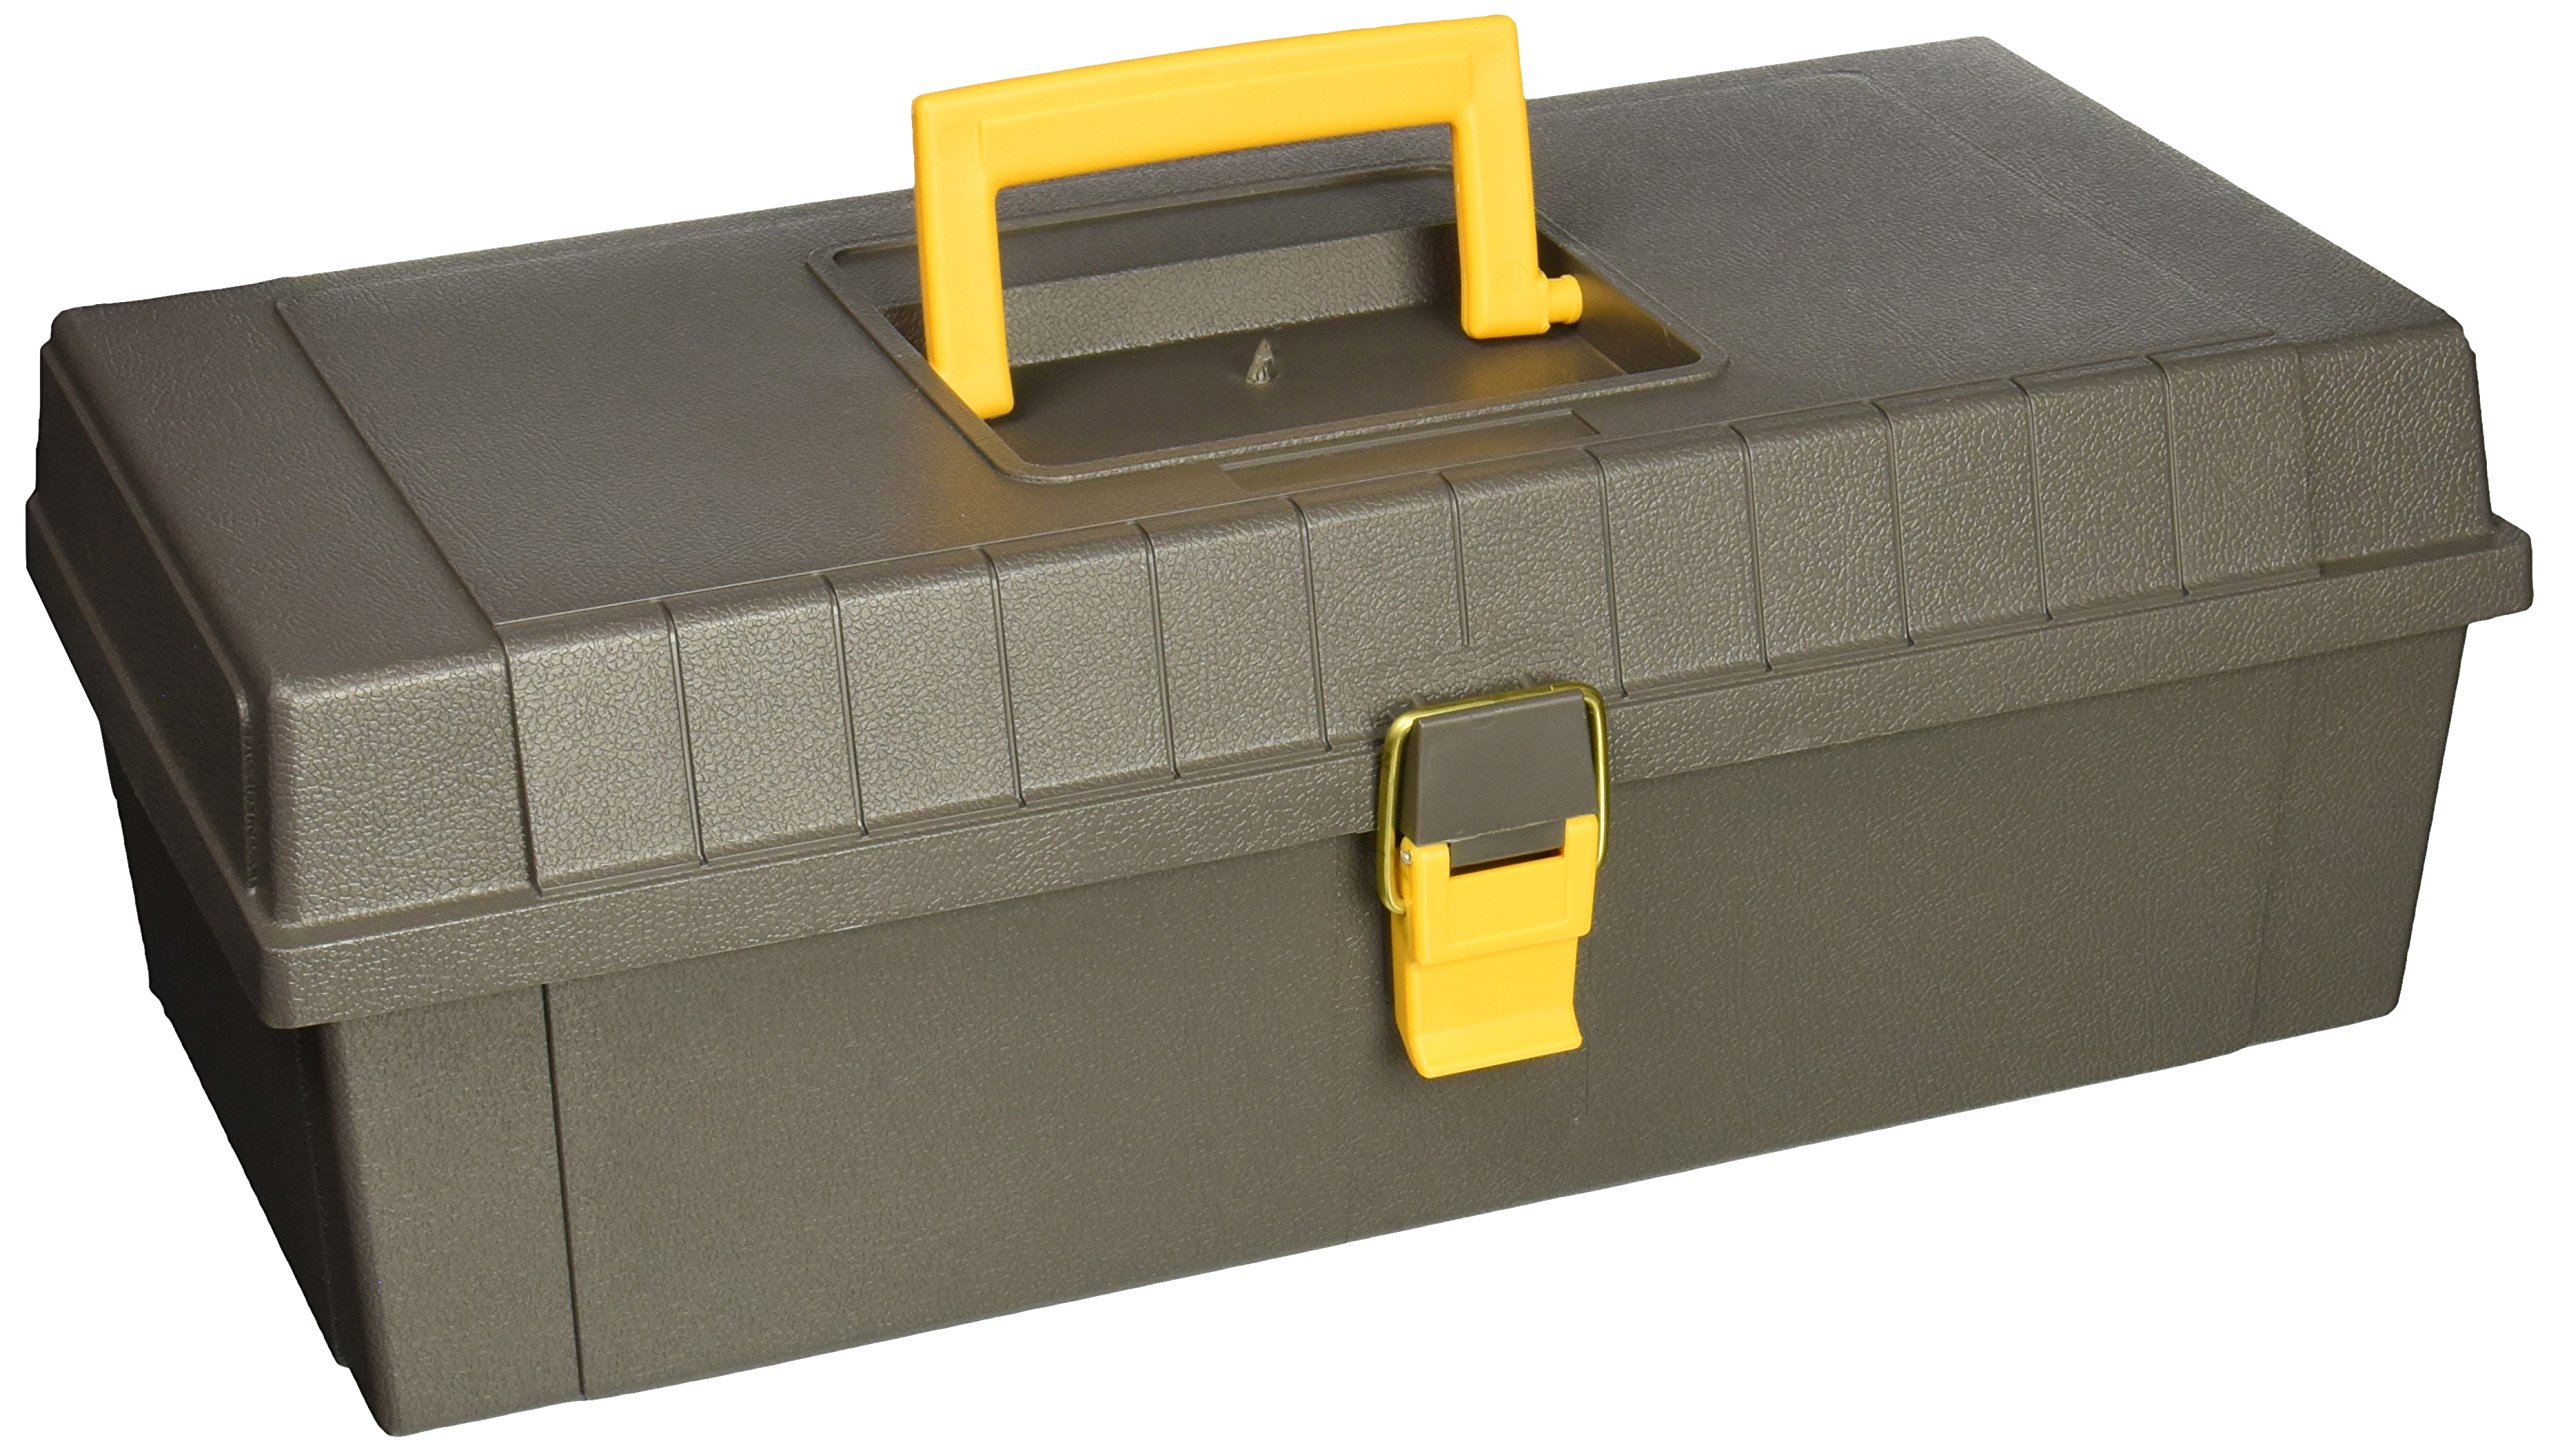 Plano Molding 100 15 Inch Tool Box Graphite Gray With Iron